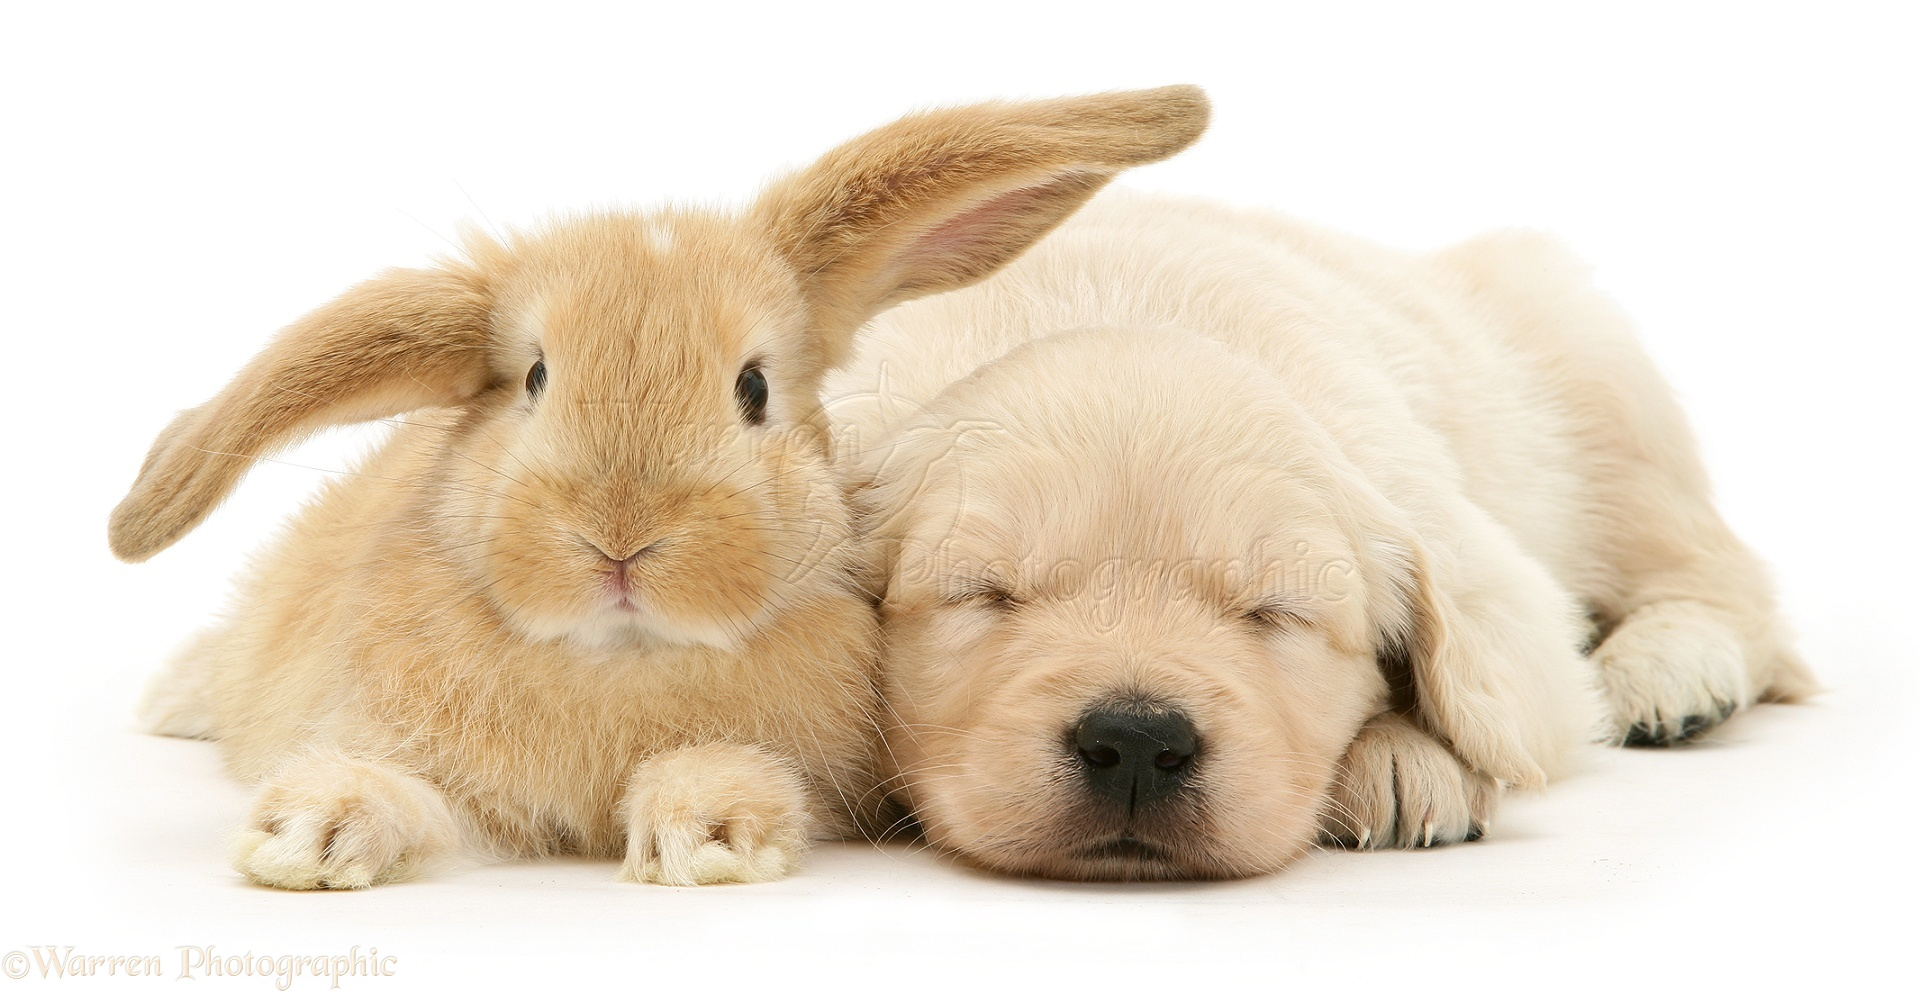 Pets: Baby sandy Lop rabbit with sleepy Golden Retriever pup photo ... Golden Retriever And Baby